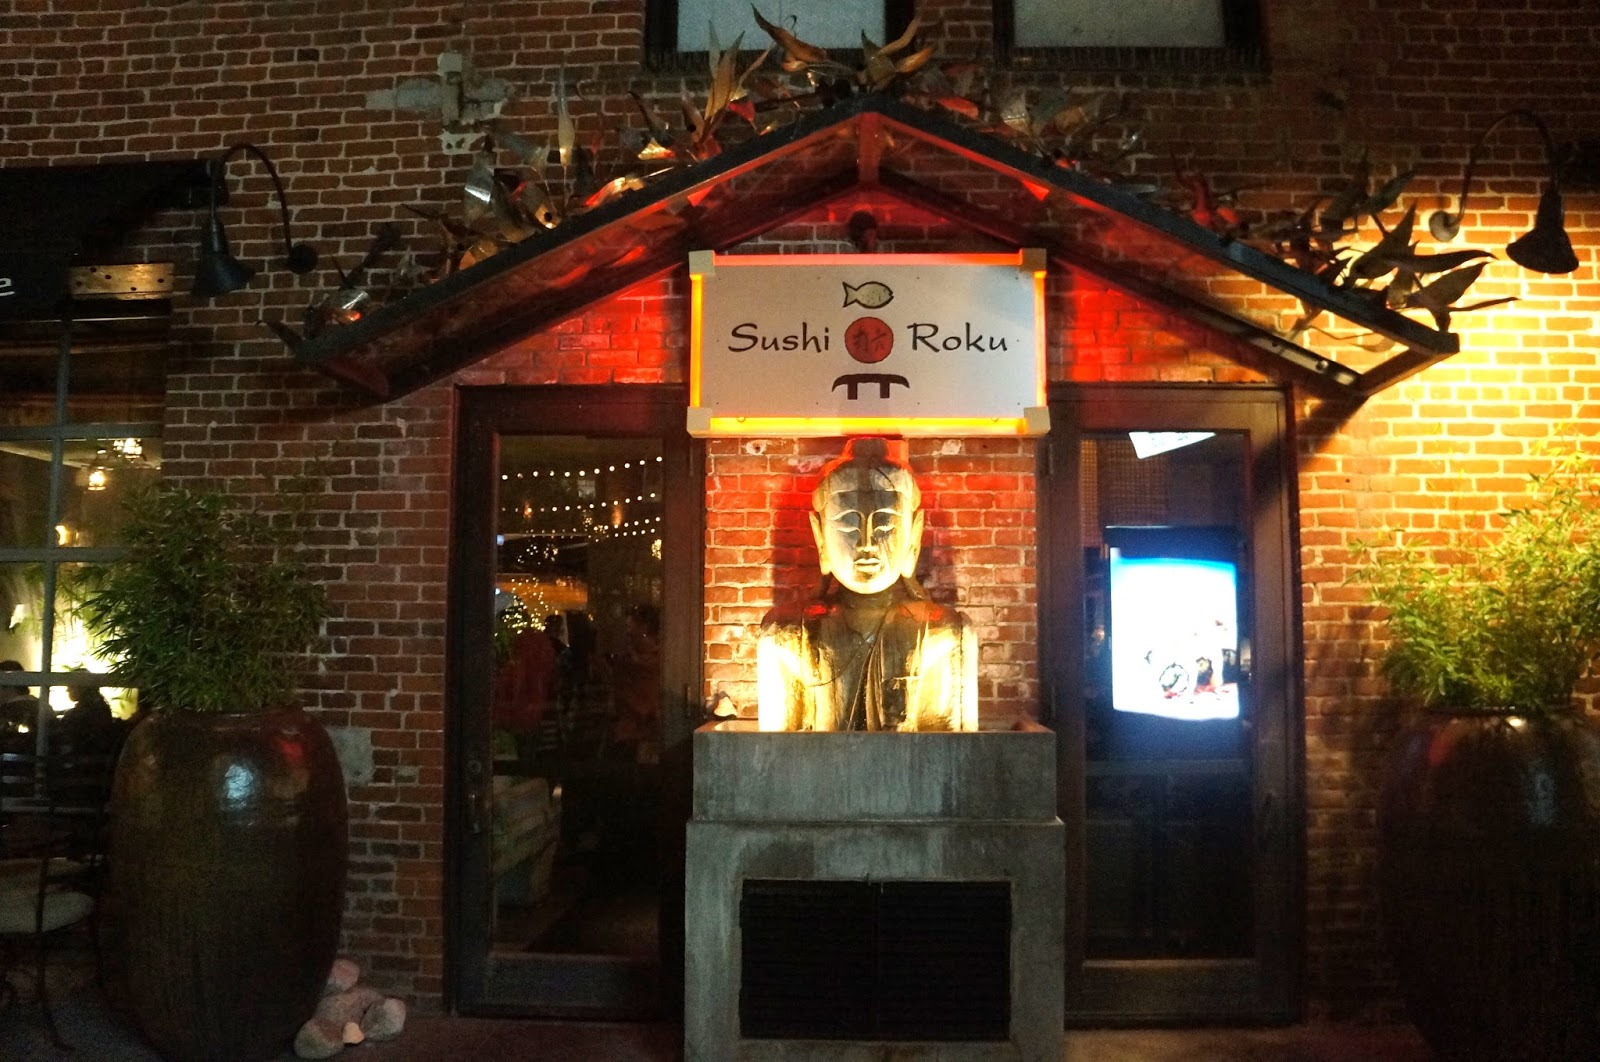 Sushi Roku Is A Restaurant Providing Contemporary Anese Cuisine With Hint Of Innovation The Combines Ings That Are Traditional To